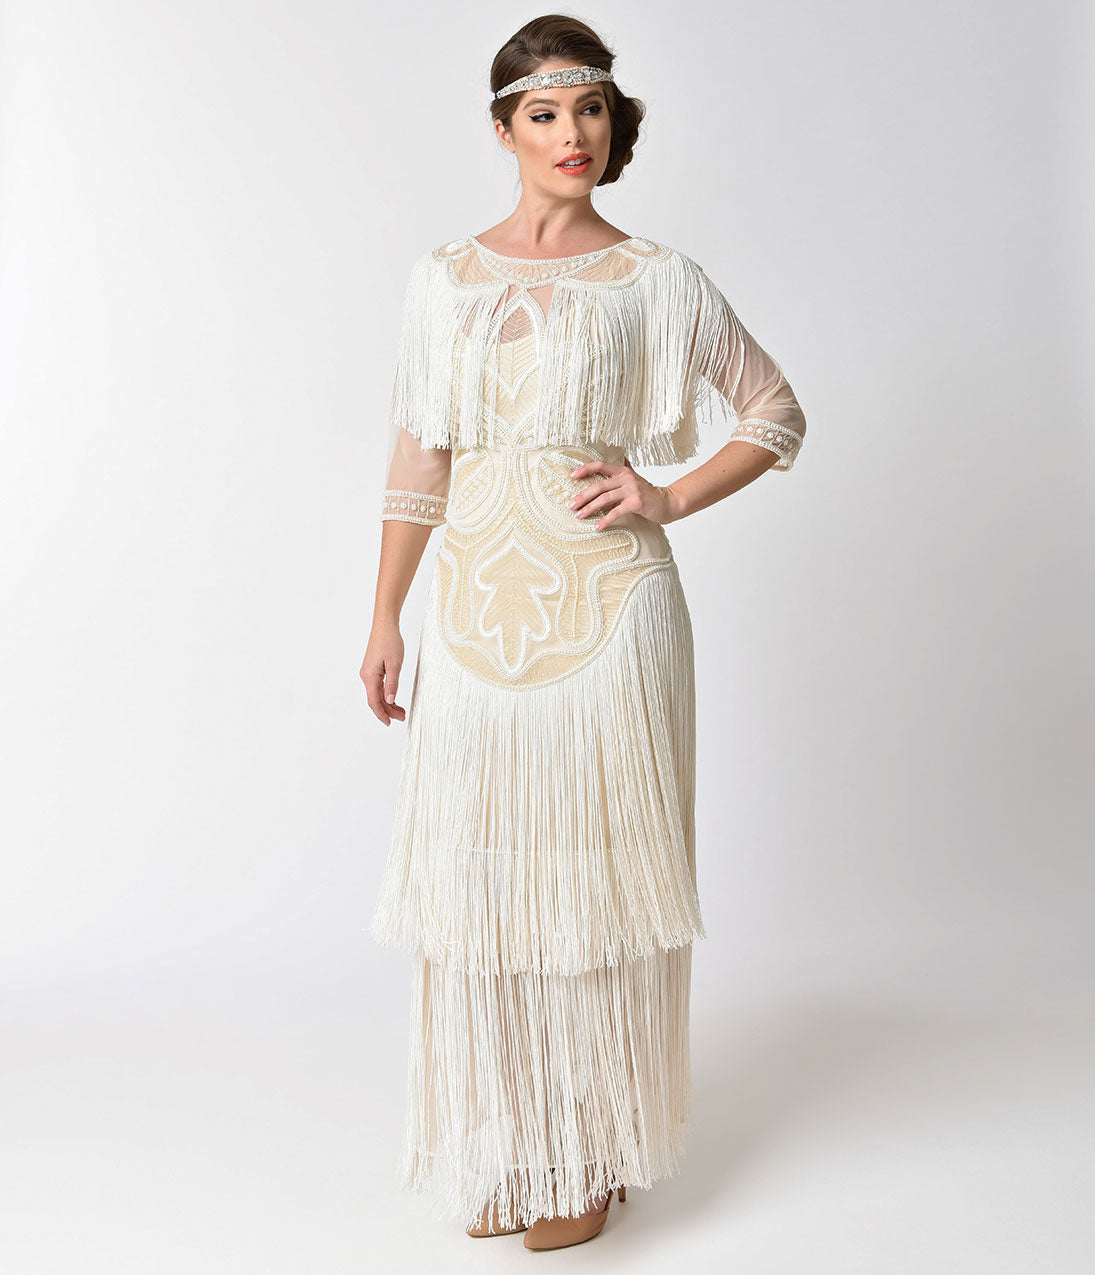 1920s Wedding Dresses- Art Deco Wedding Dress, Gatsby Wedding Dress 1920S Style Cream Pearl Beaded Mesh Glam Fringe Flapper Maxi Gown $152.00 AT vintagedancer.com